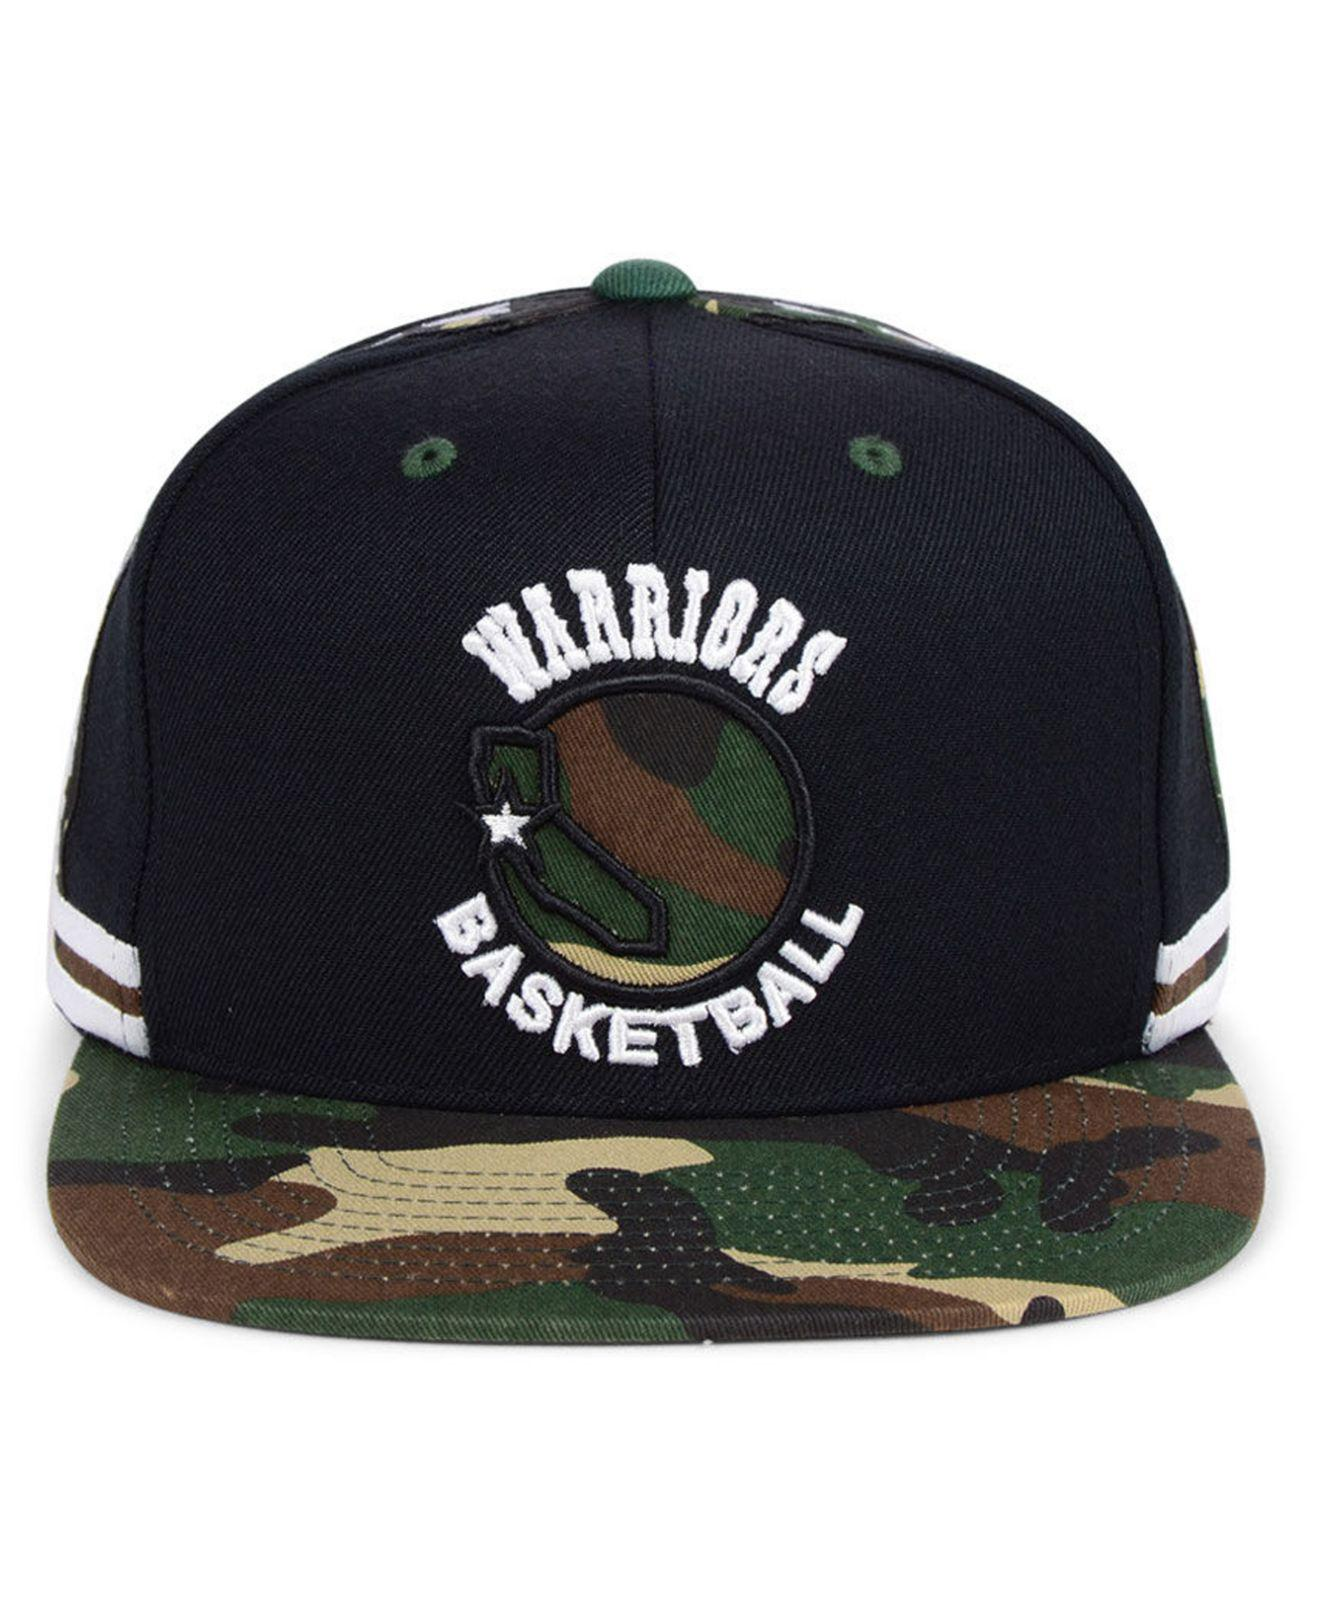 1eeccd60ee8 Lyst - Mitchell   Ness Golden State Warriors Straight Fire Camo Hook  Snapback Cap in Black for Men